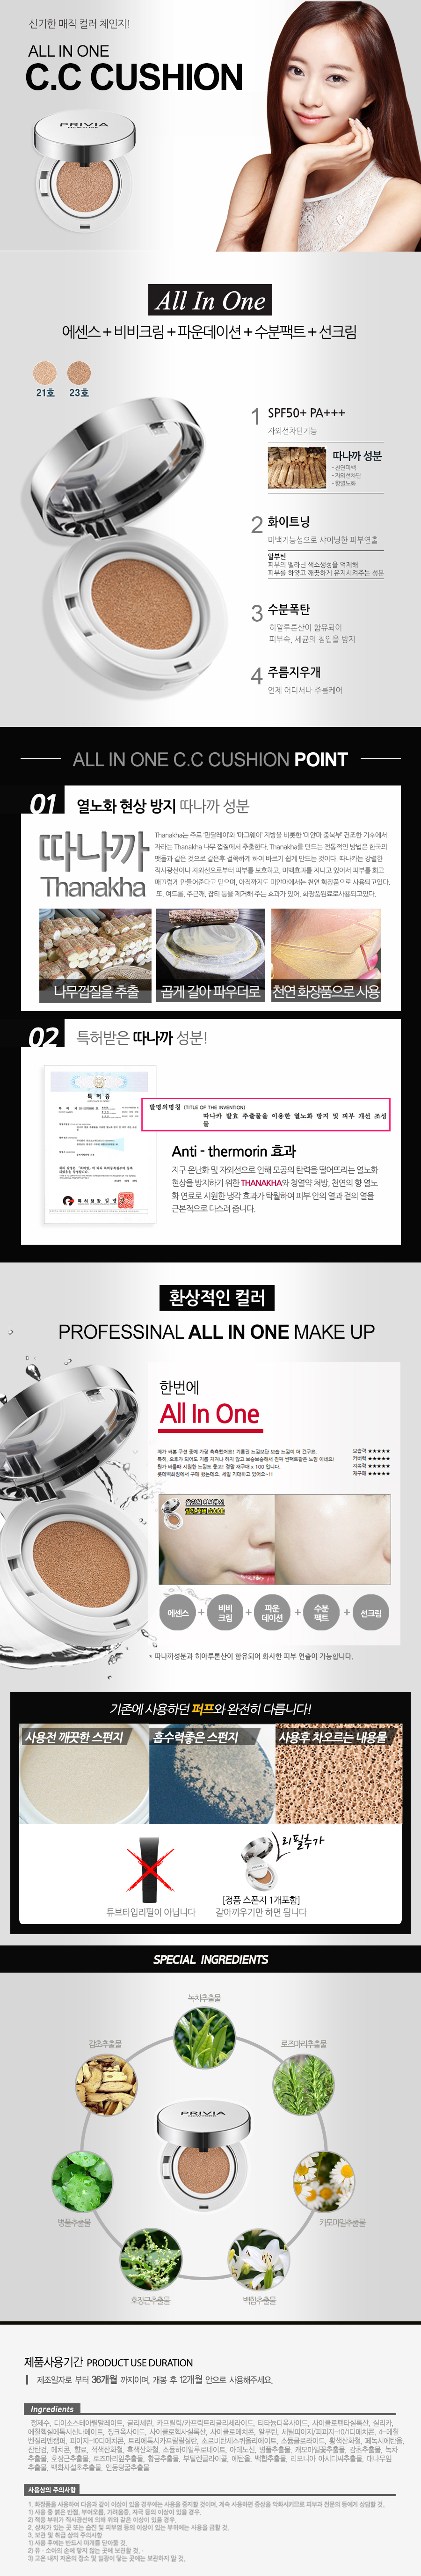 Previa all-in-one CC cushion